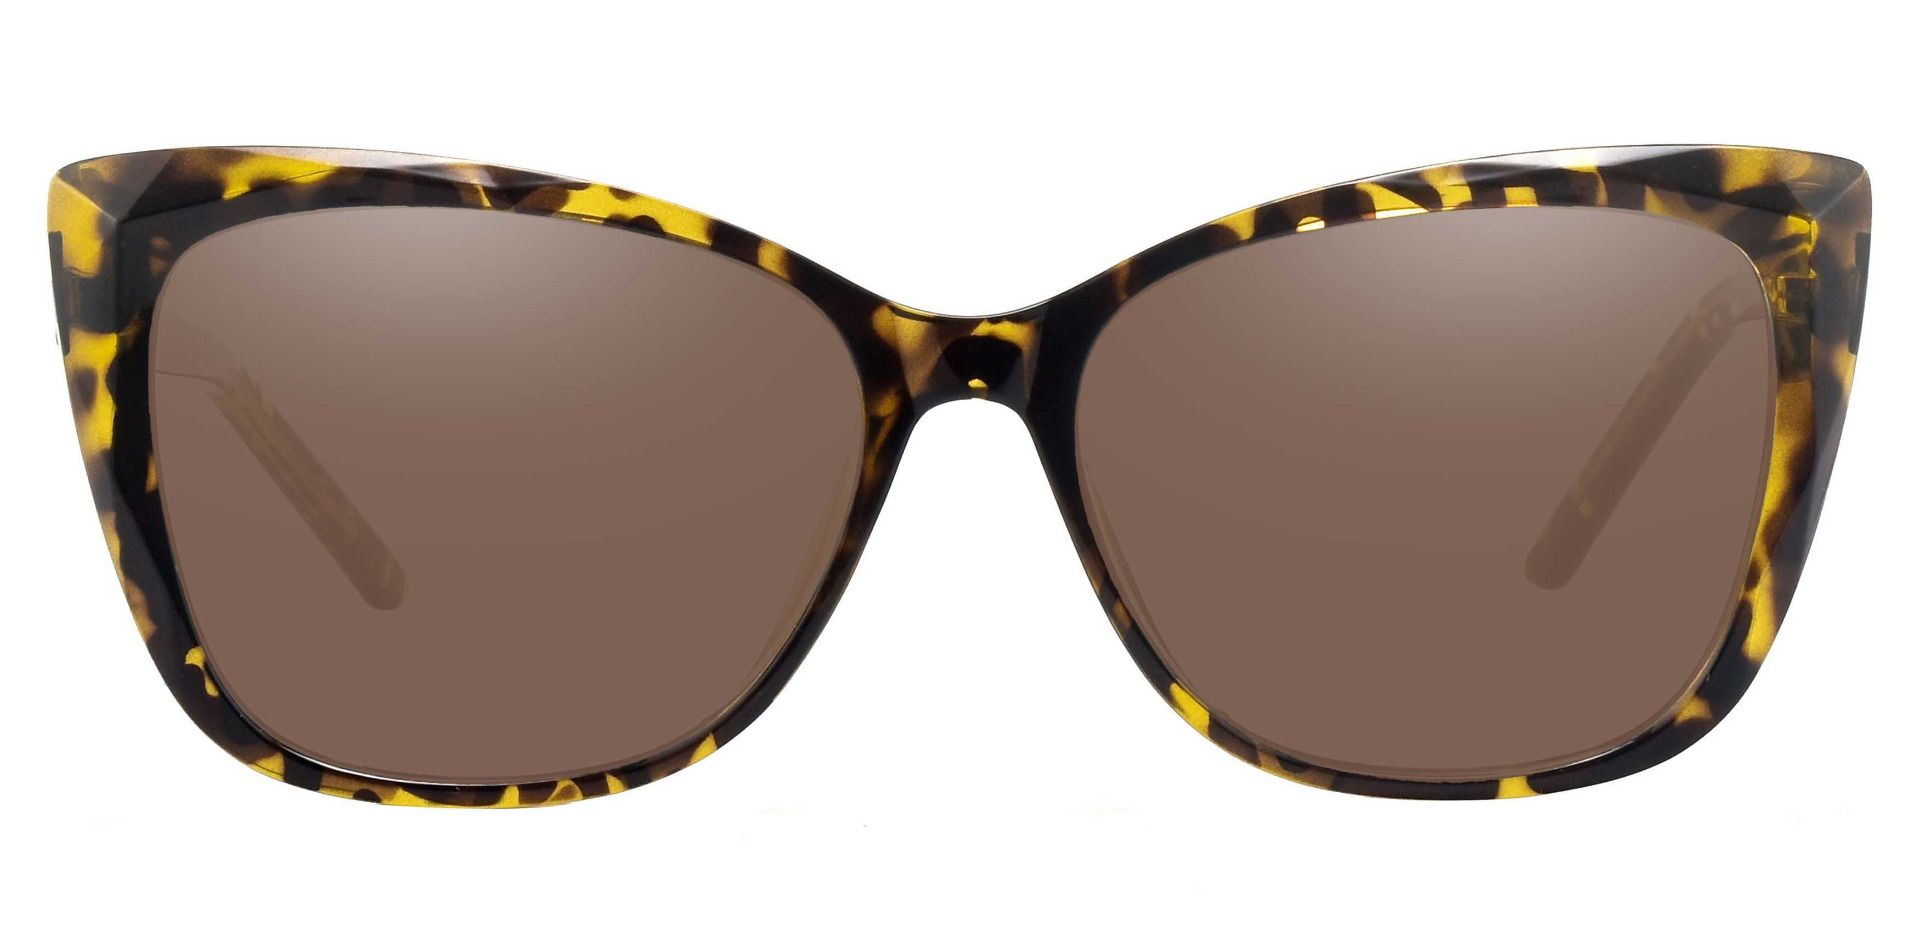 Mabel Square Non-Rx Sunglasses - Tortoise Frame With Brown Lenses